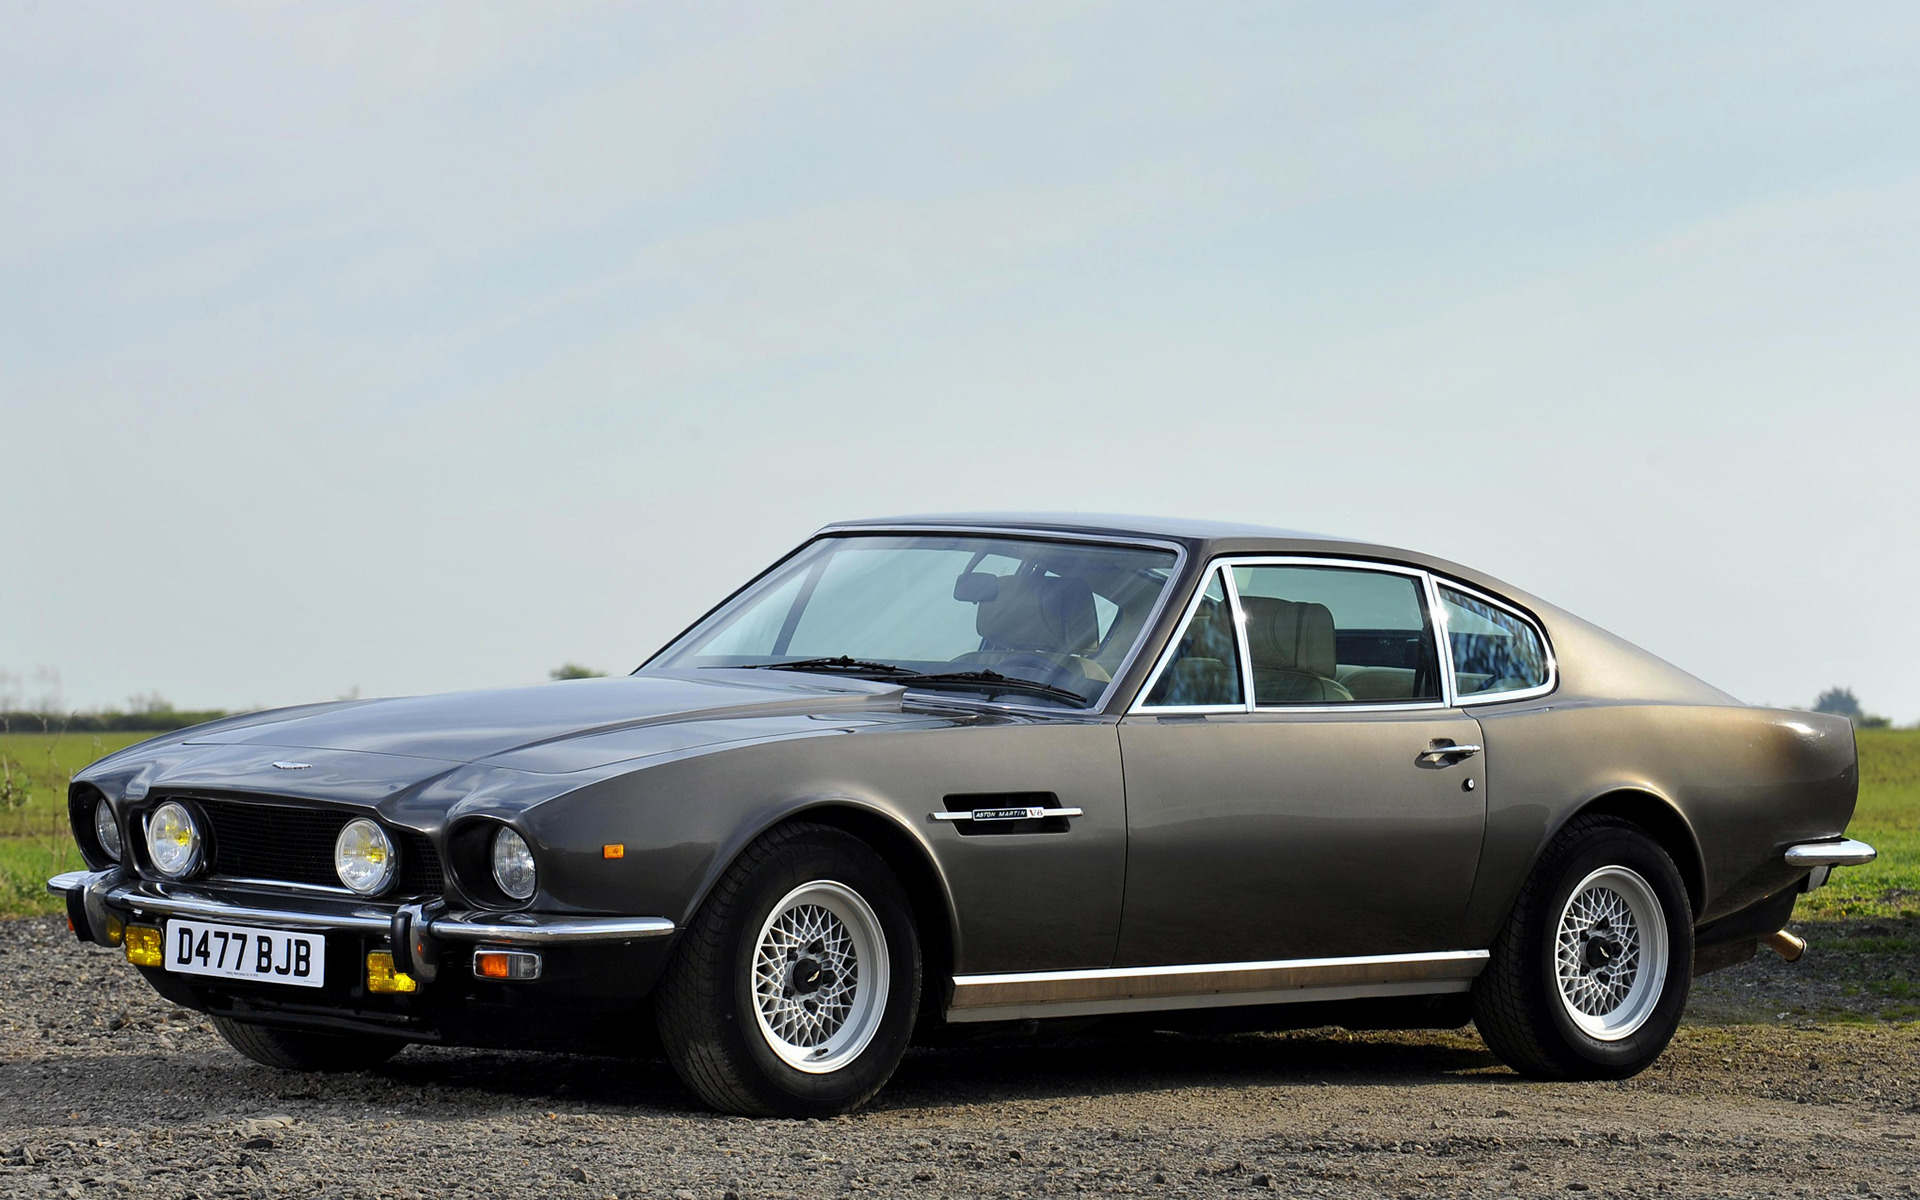 Aston Martin V8 (1986) Wallpapers and HD Images - Car Pixel